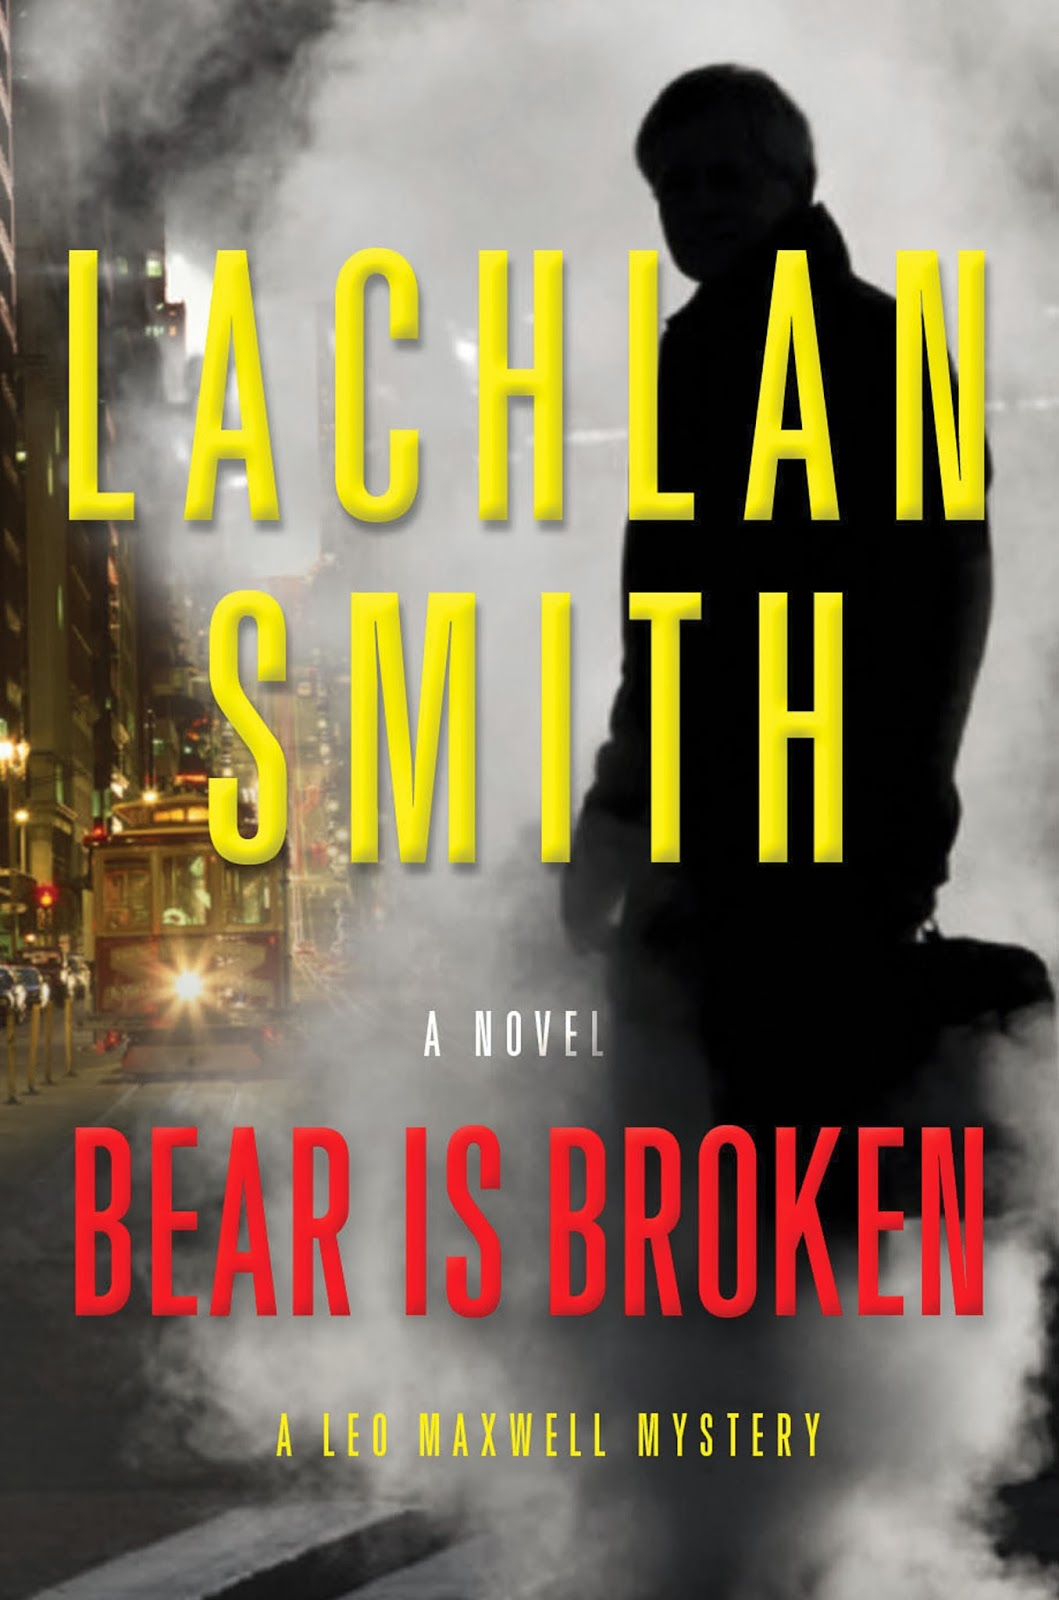 http://discover.halifaxpubliclibraries.ca/?q=title:%22bear%20is%20broken%22smith